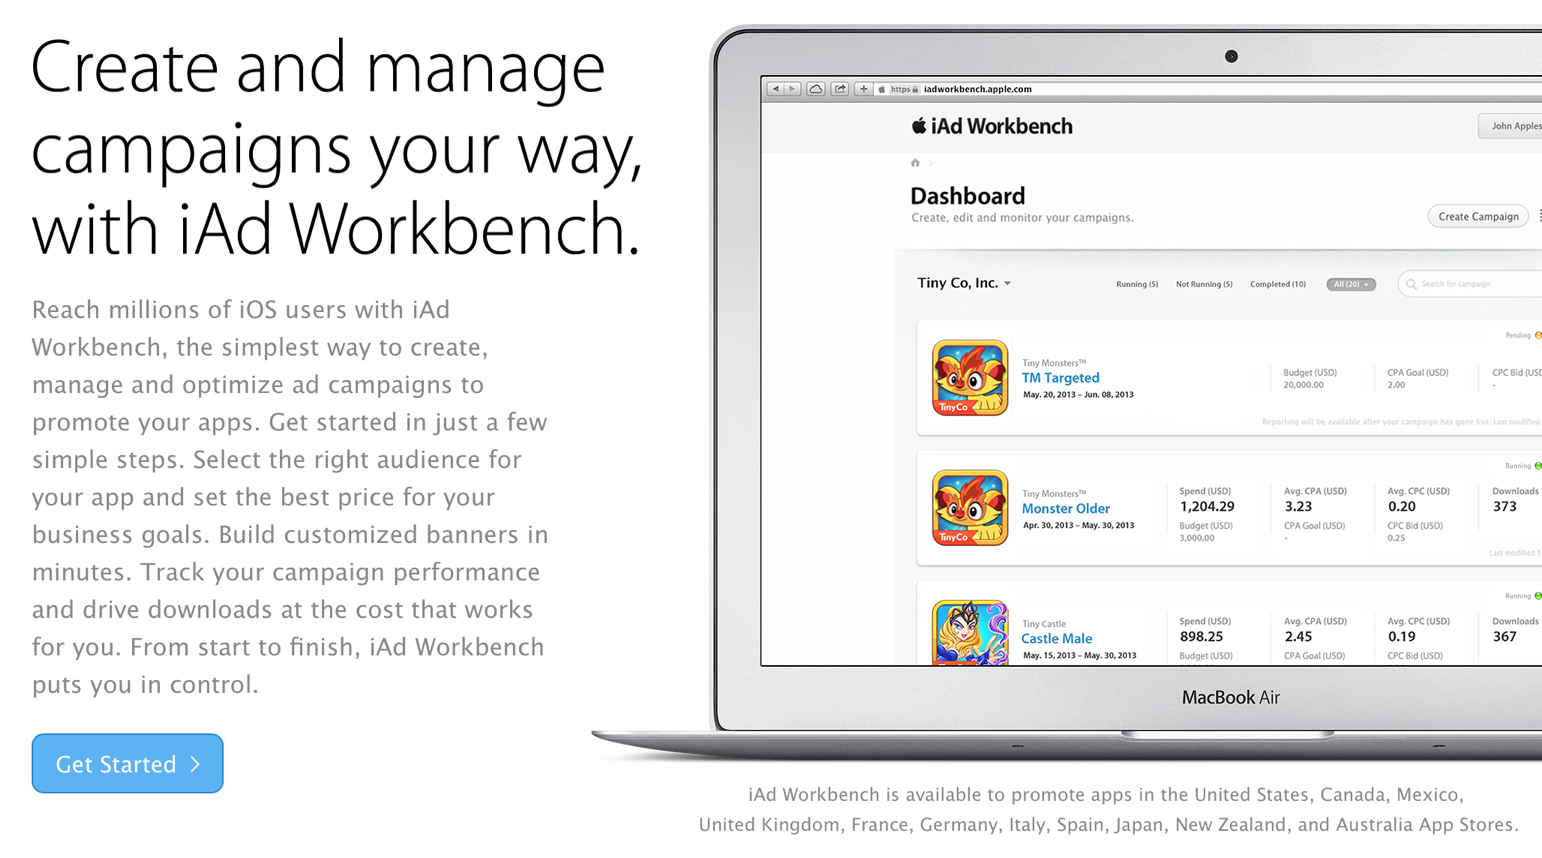 Apple Launches iAd Workbench In A Number Of International Countries